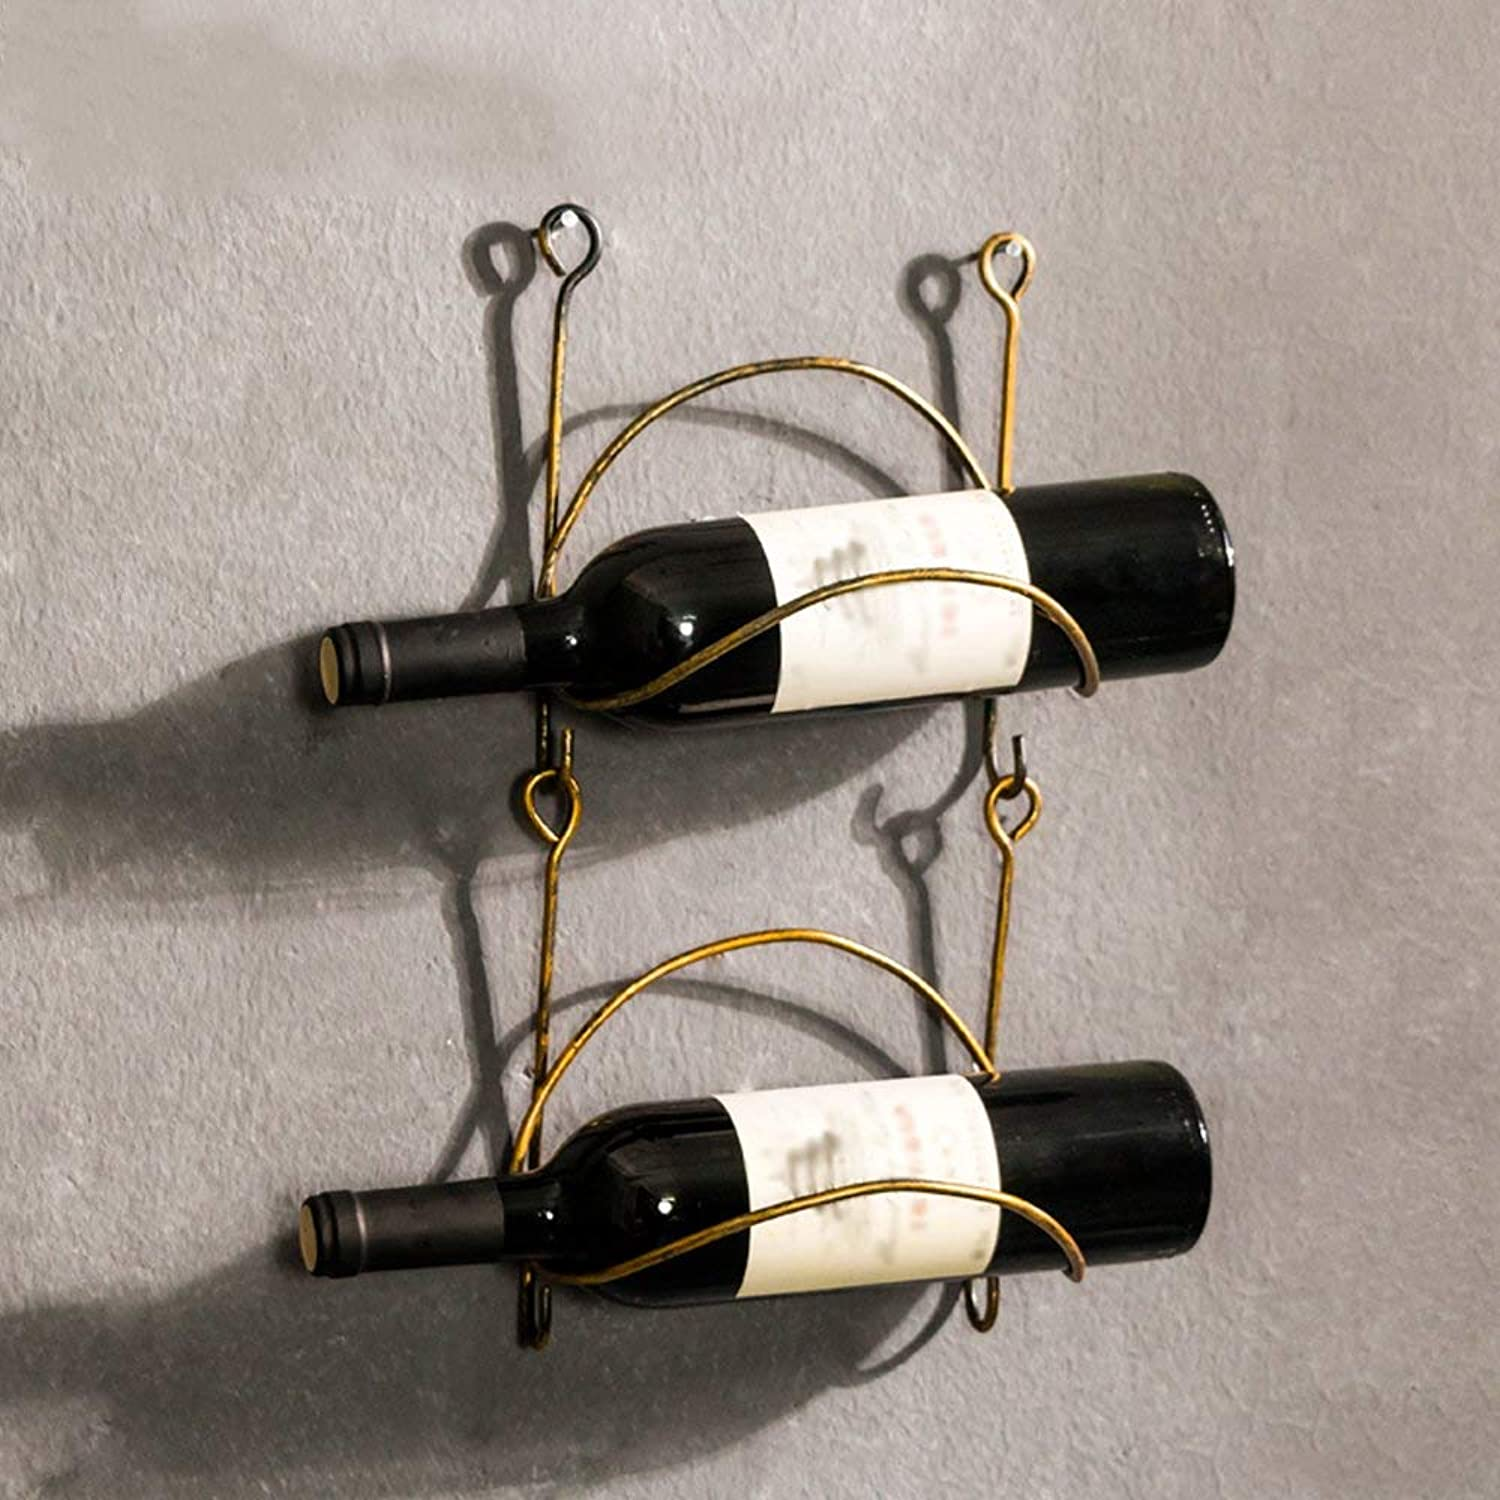 Red Wine Shelf Wrought Iron Wine Rack Wall Mount Bottle Storage Organizer Rustic Home Decor Curved Finish (Does Not Contain Wine Bottles),2Racks